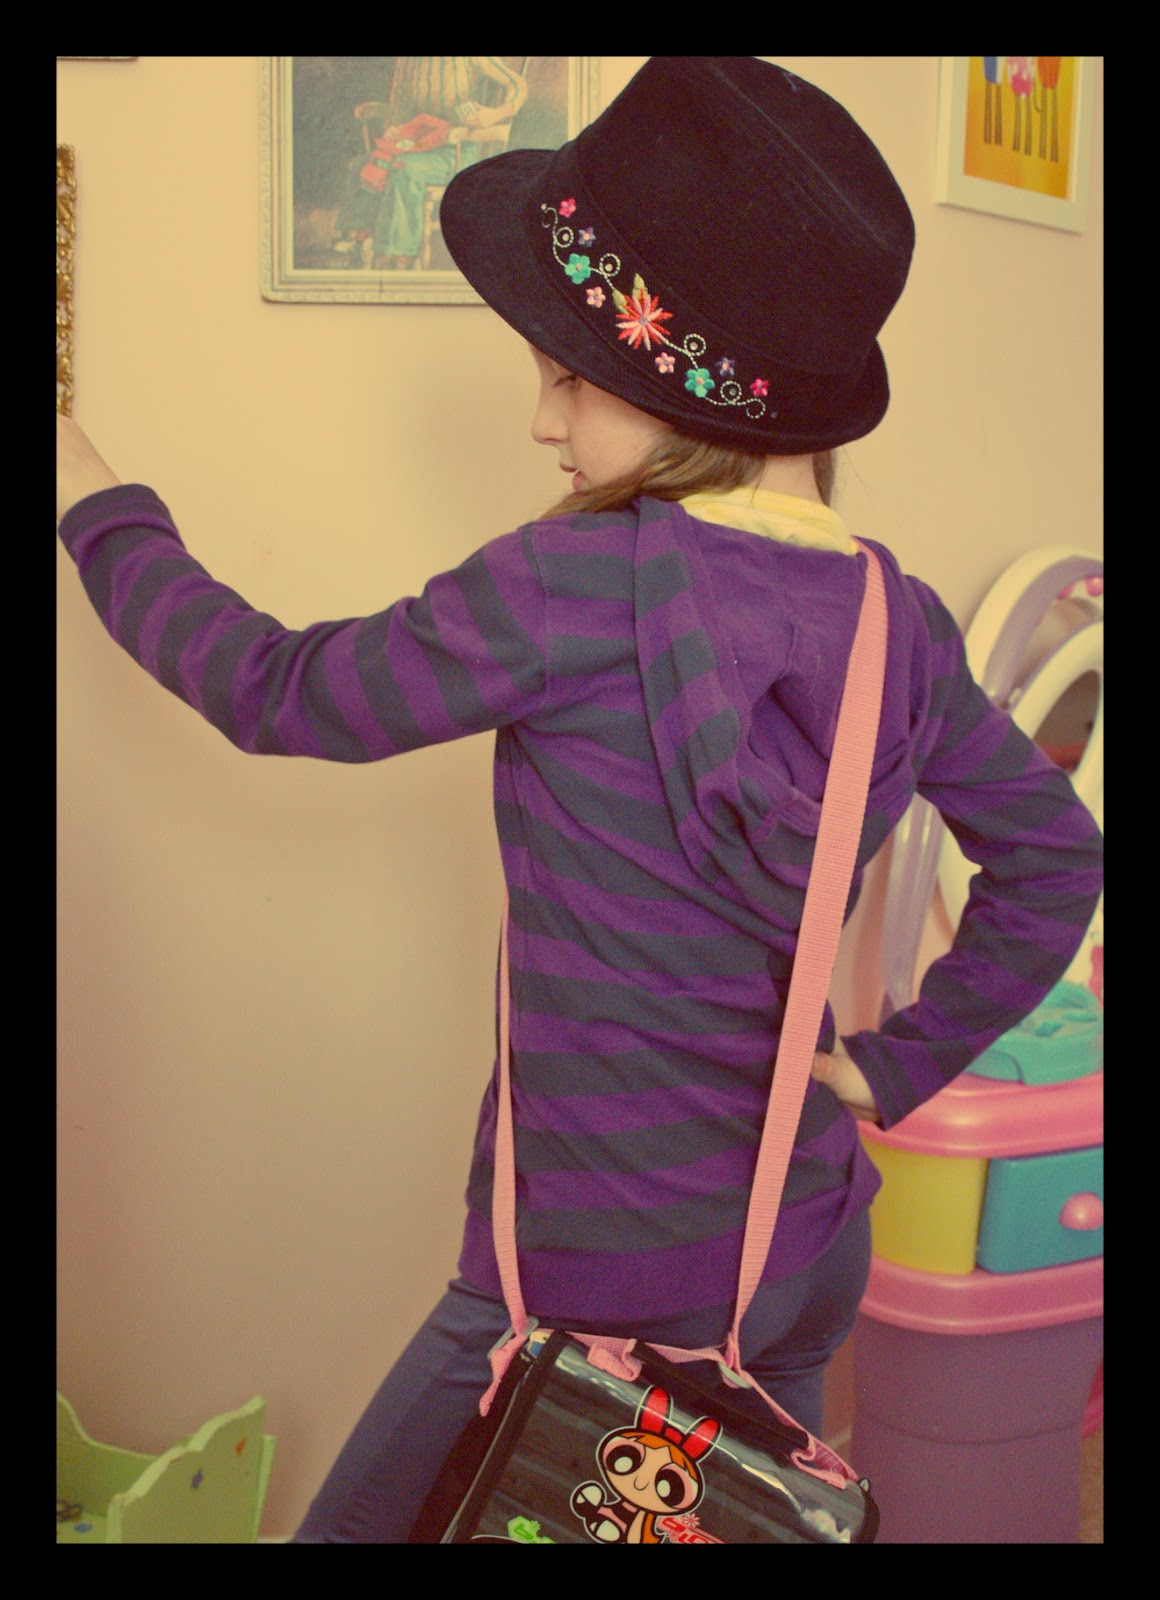 http://4.bp.blogspot.com/-NBcxK83p-bg/T4HWRaK7ouI/AAAAAAAABBU/zJDh-cOLyB4/s1600/18.+purple+stripe+top+with+black+fedora.jpg